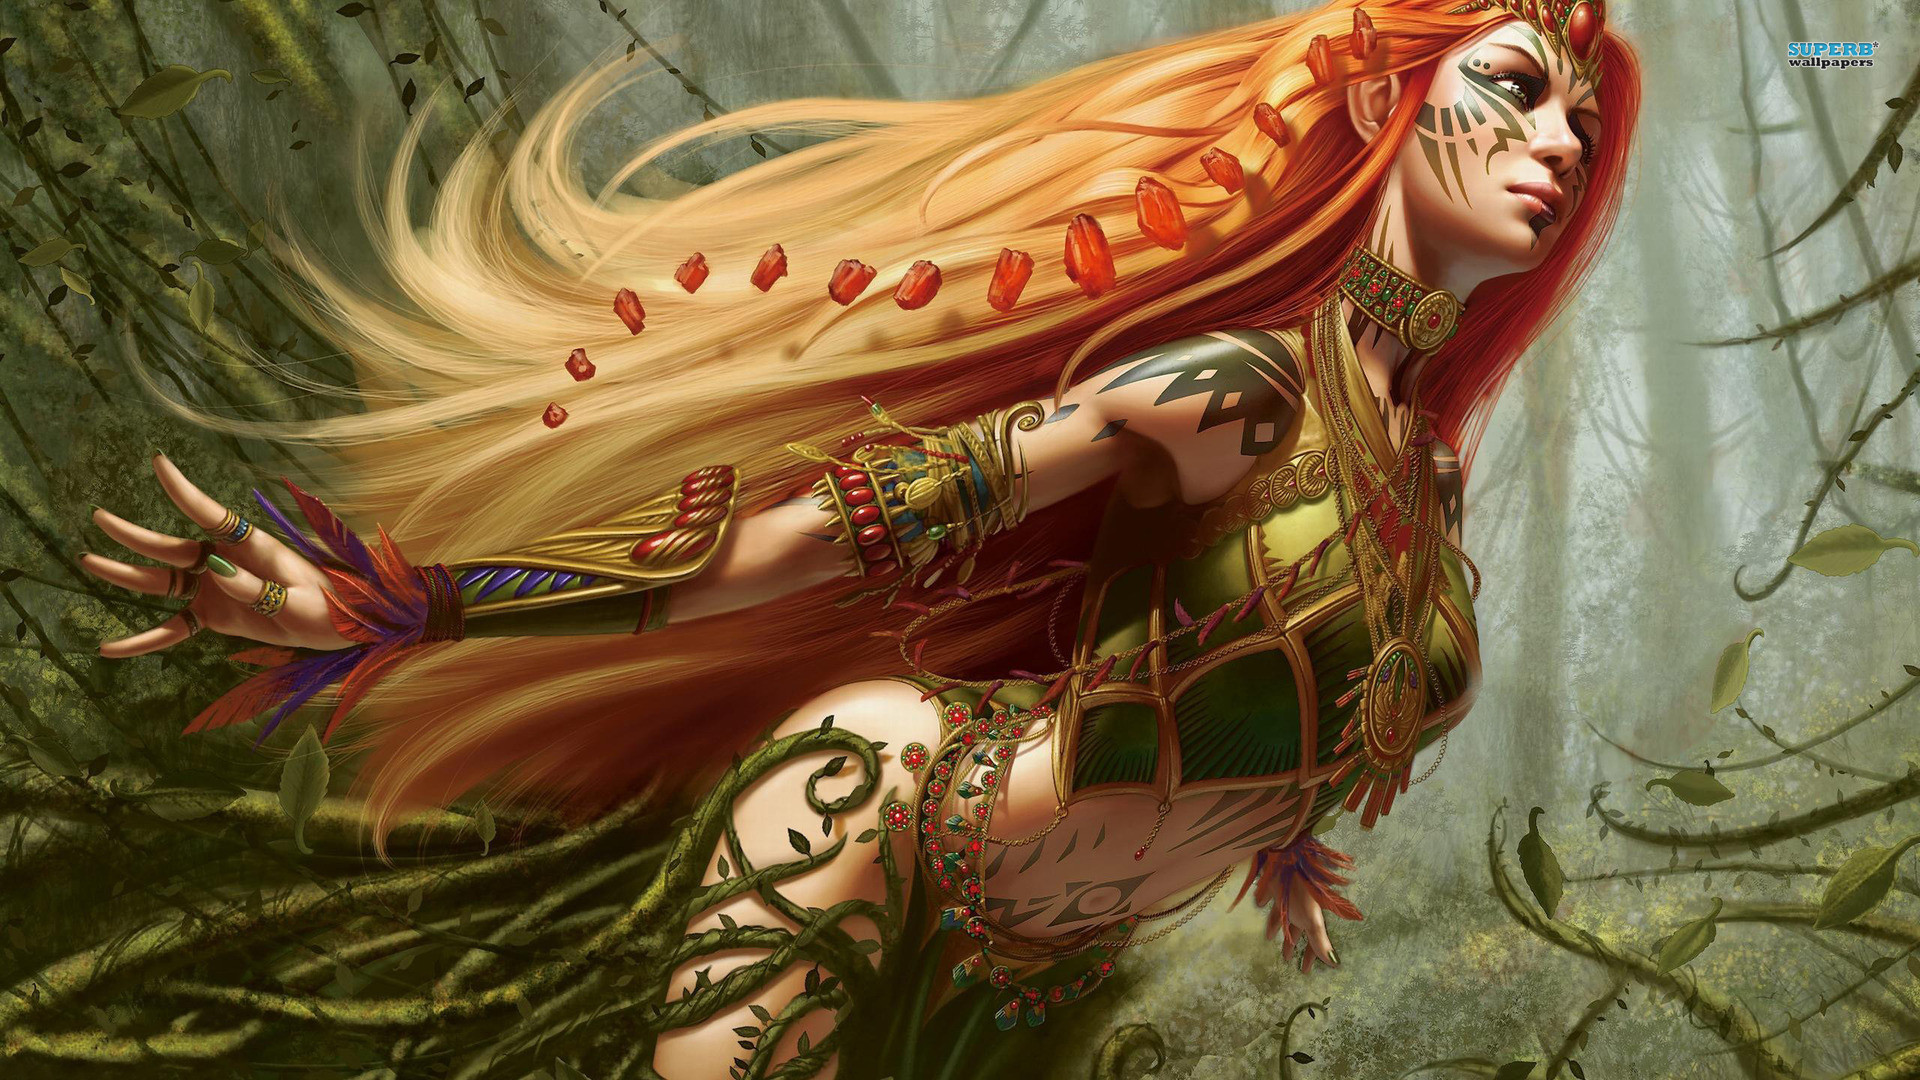 1920x1080 Artwork Fantasy Art Magic The Gathering Naya Battlemage Redheads Steve  Argyle Women free iPhone or Android Full HD wallpaper.